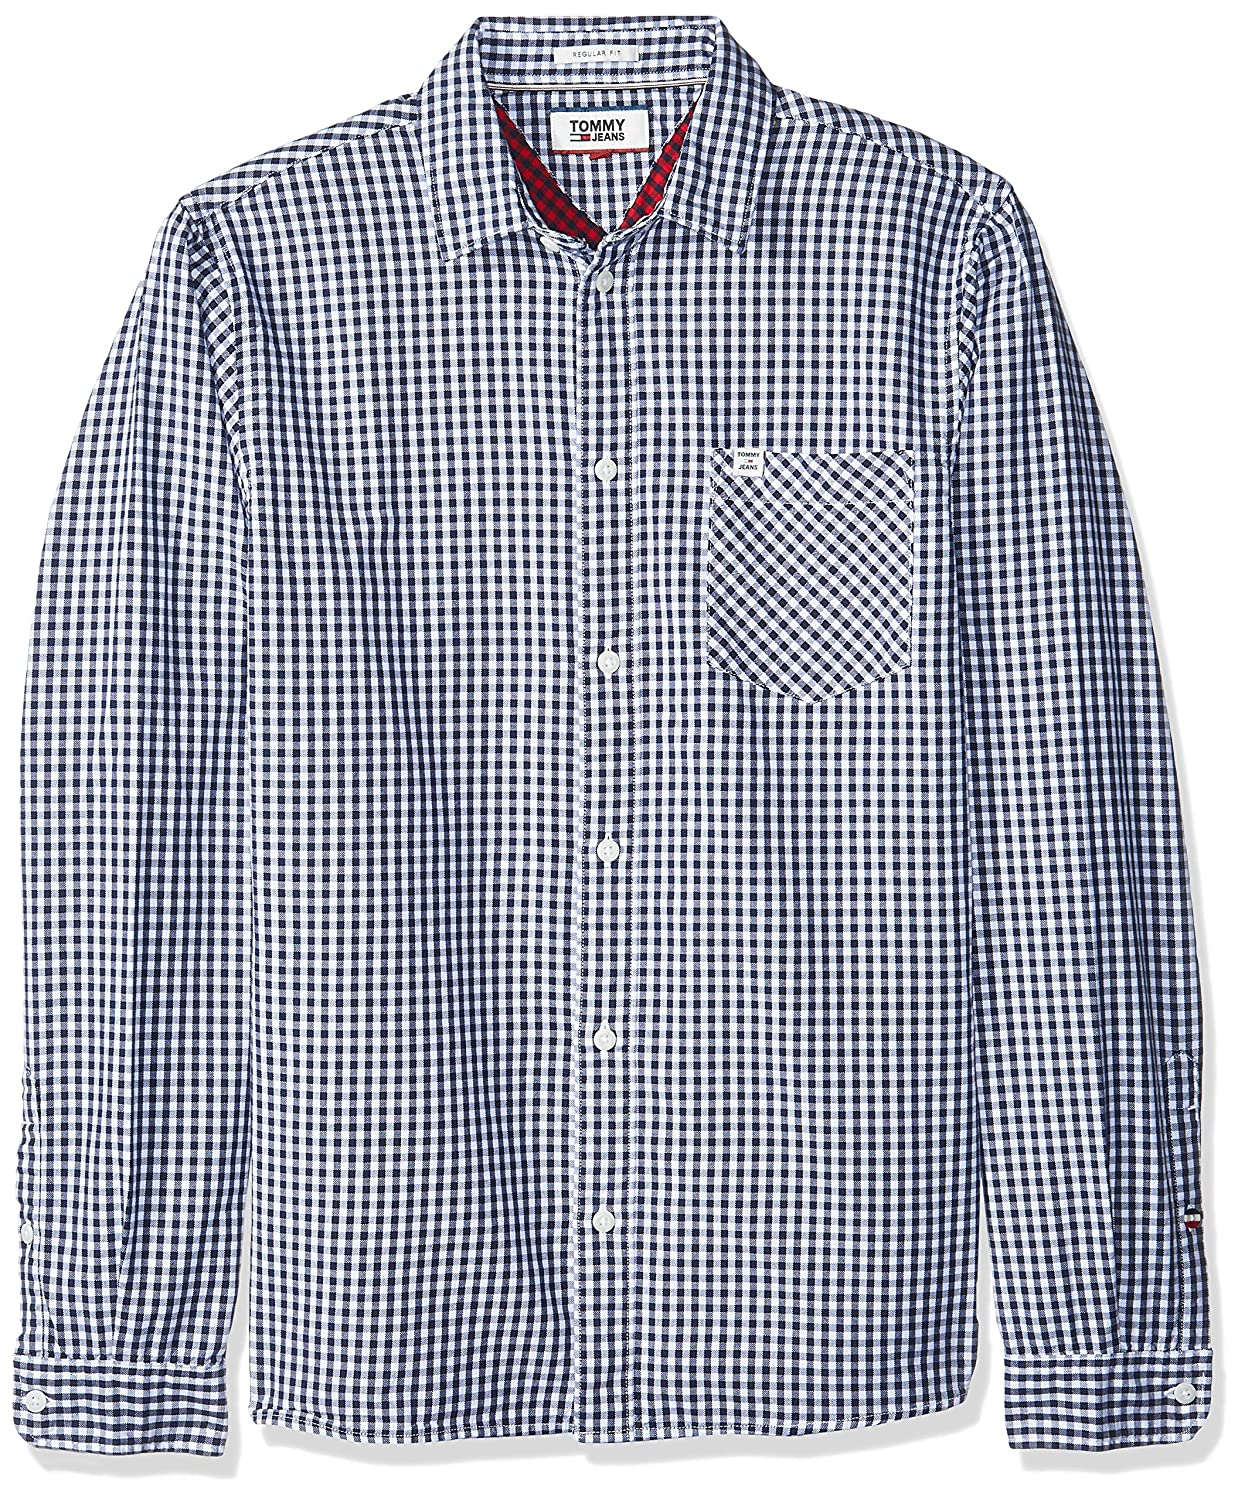 Tommy Jeans Hombre Essential Gingham Check Camisa Manga Larga